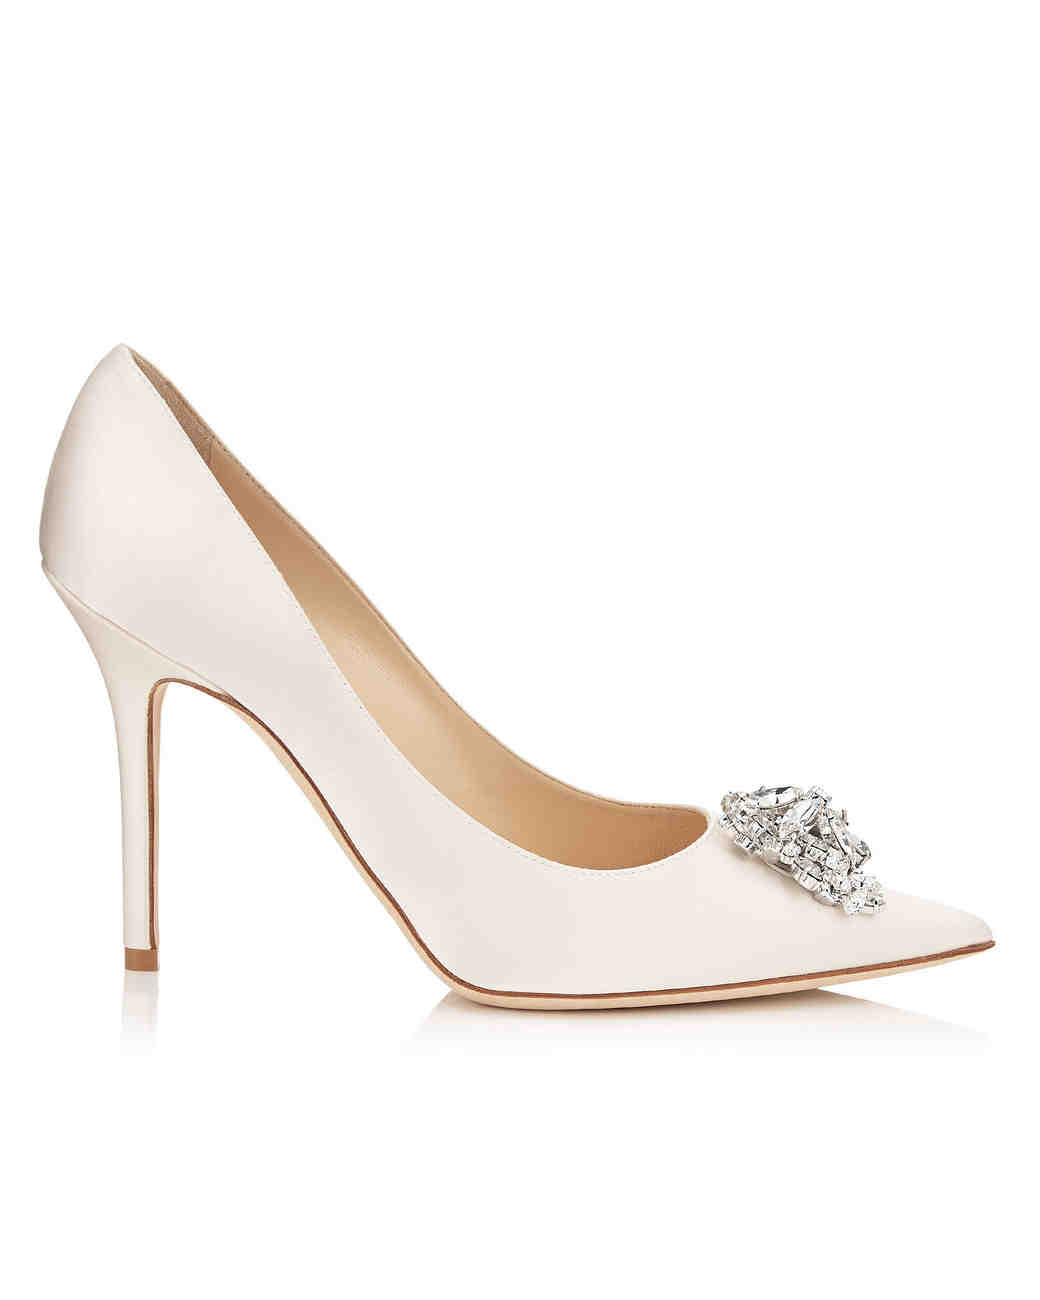 5ef86df8fd7 Closed-Toe Evening Shoes to Rock for Your Winter Wedding